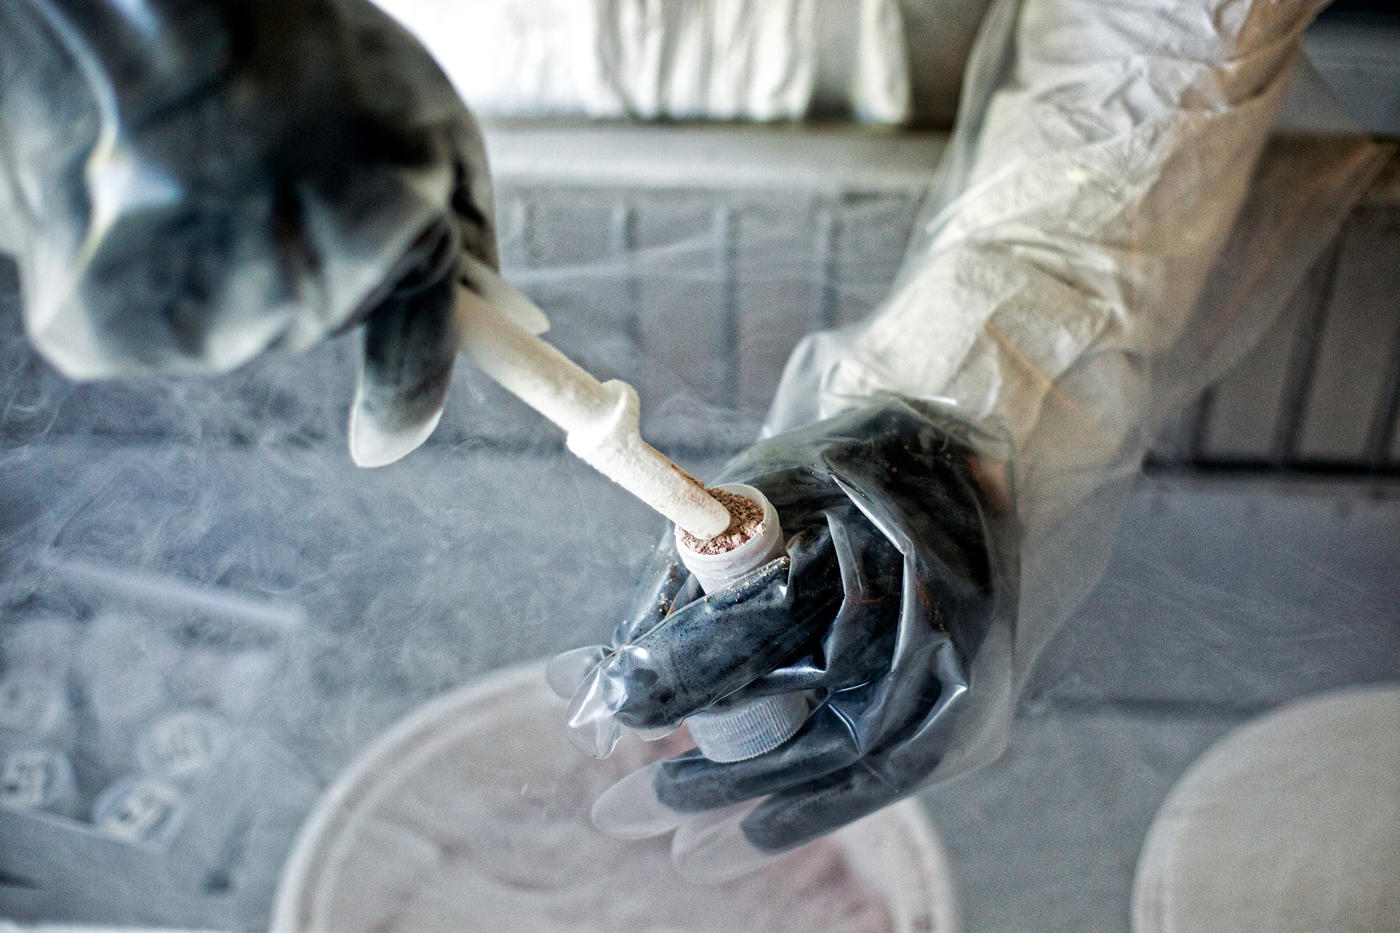 A pair of gloved hands prepares a specimen for storage using a test tube and a special, slim scoop.